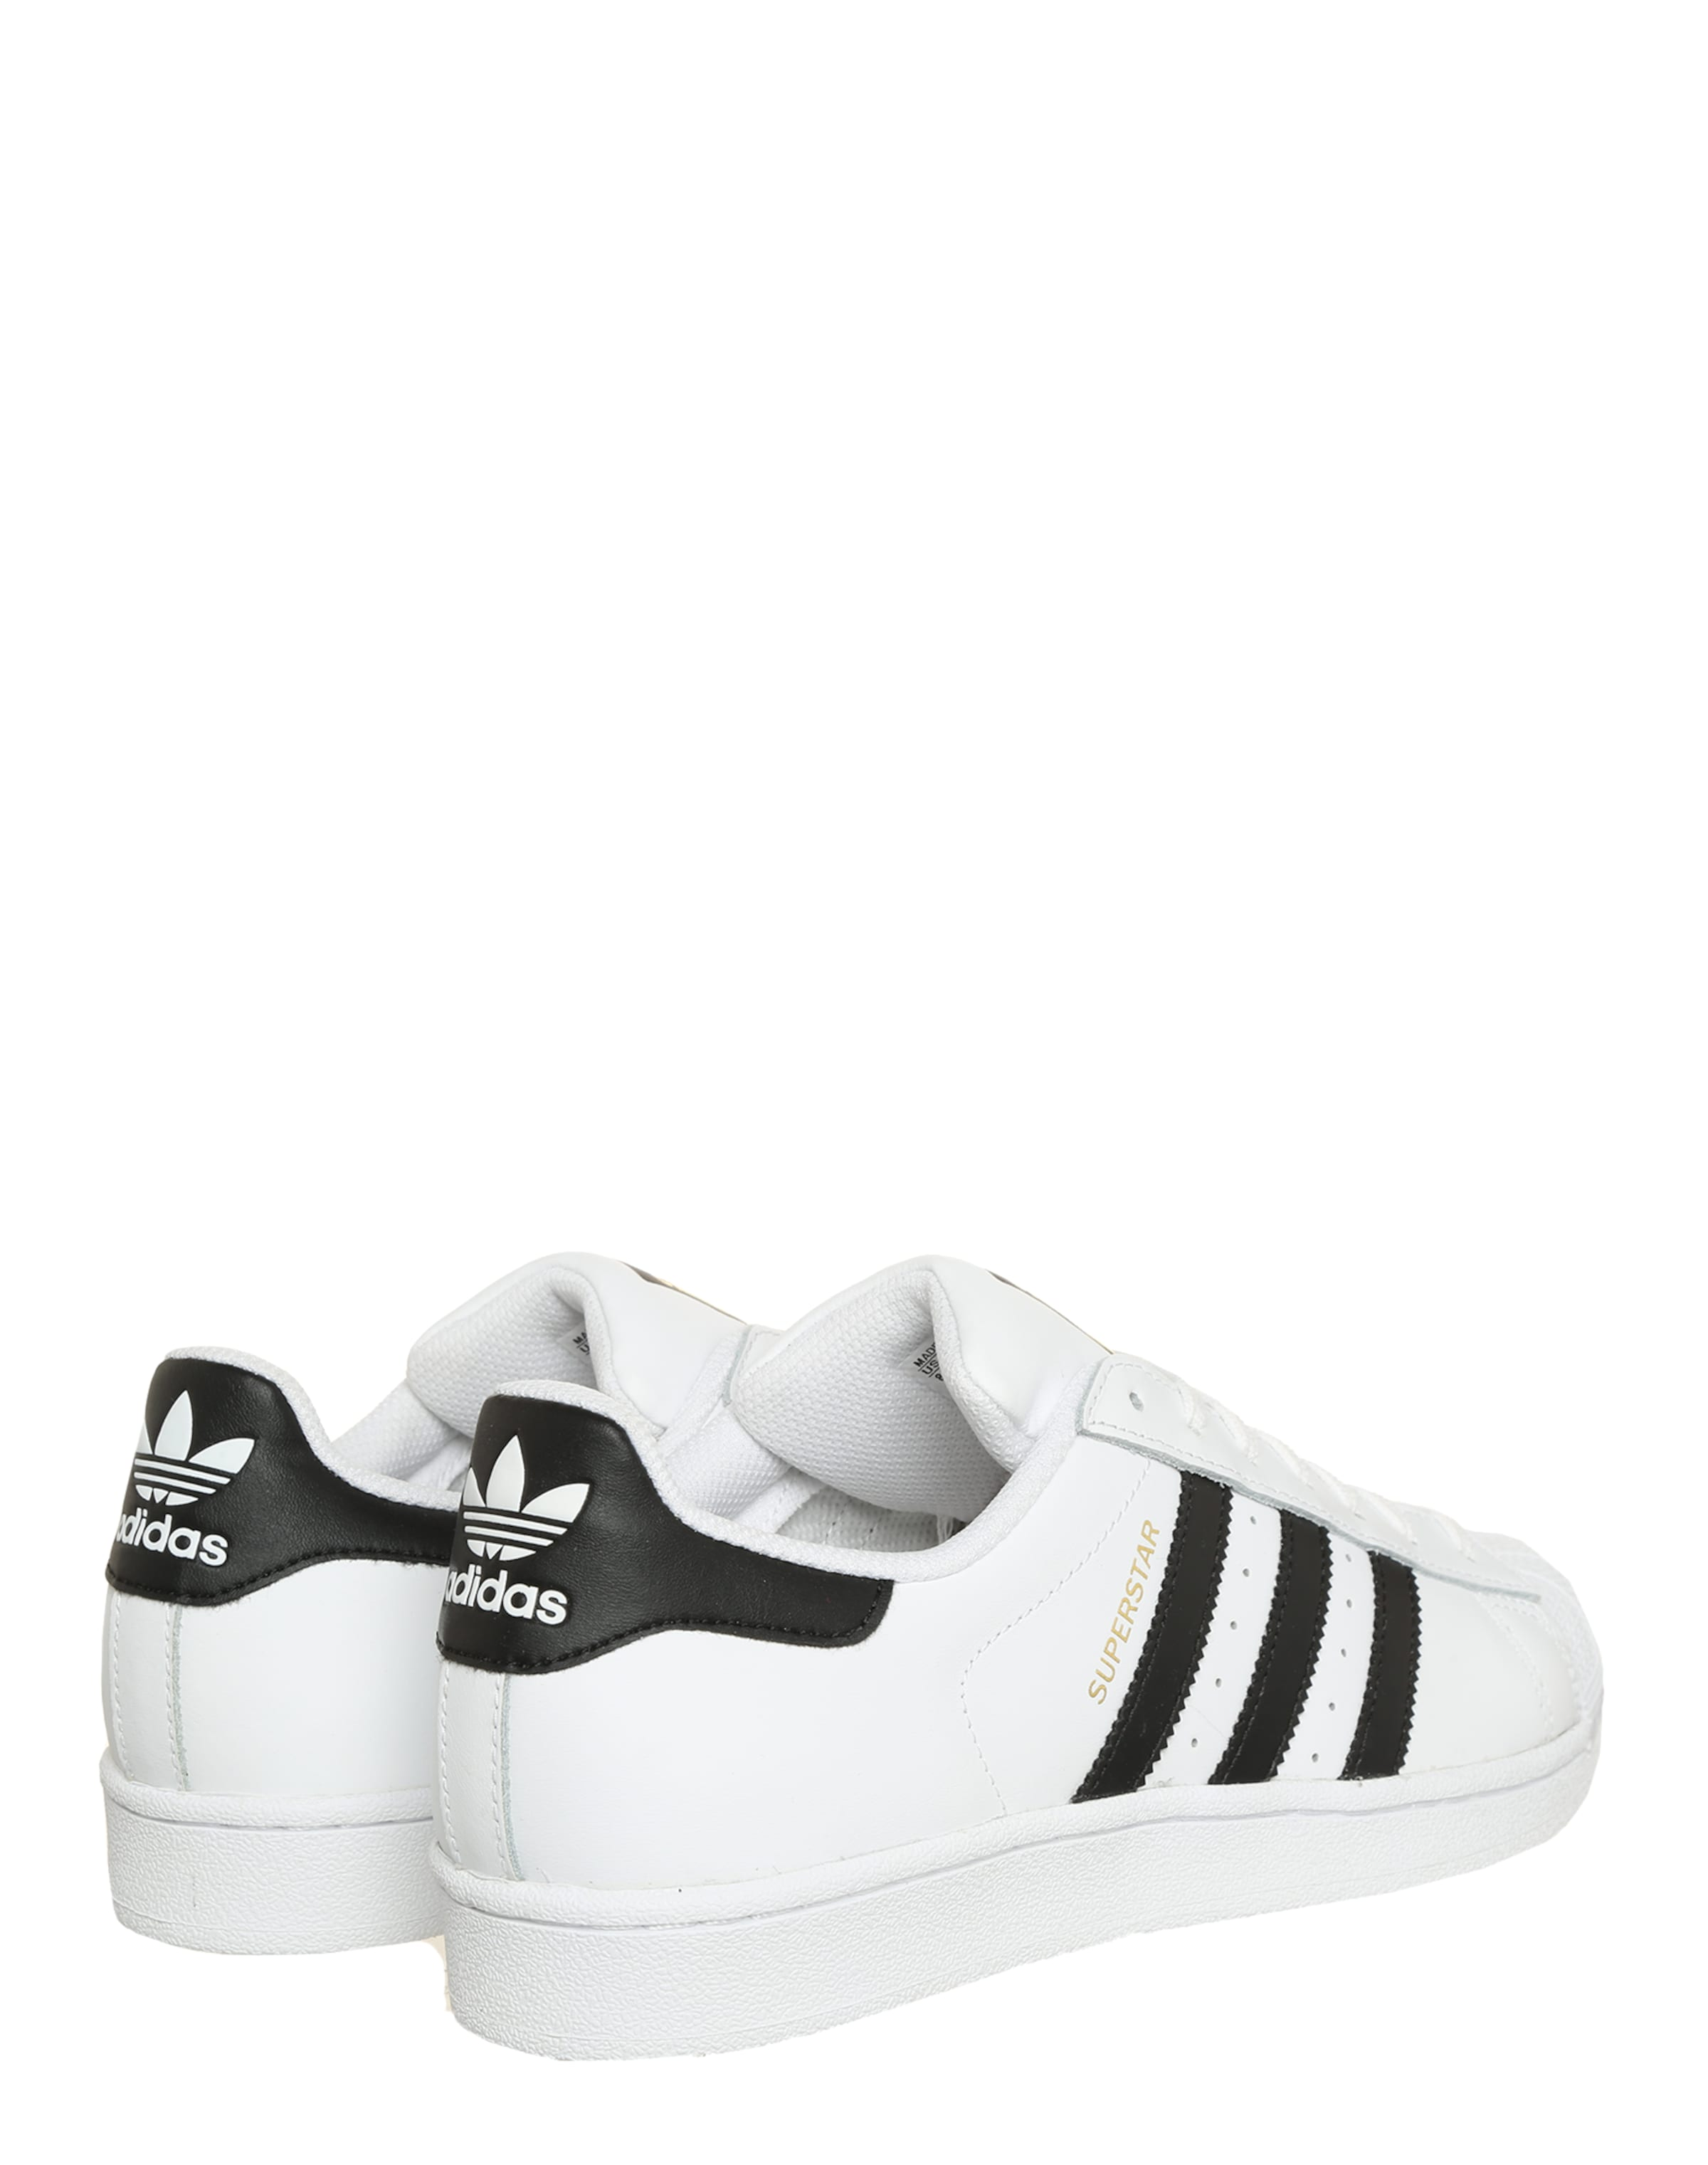 Originals Adidas Sneaker In SchwarzWeiß 'superstar' bgfY7vy6